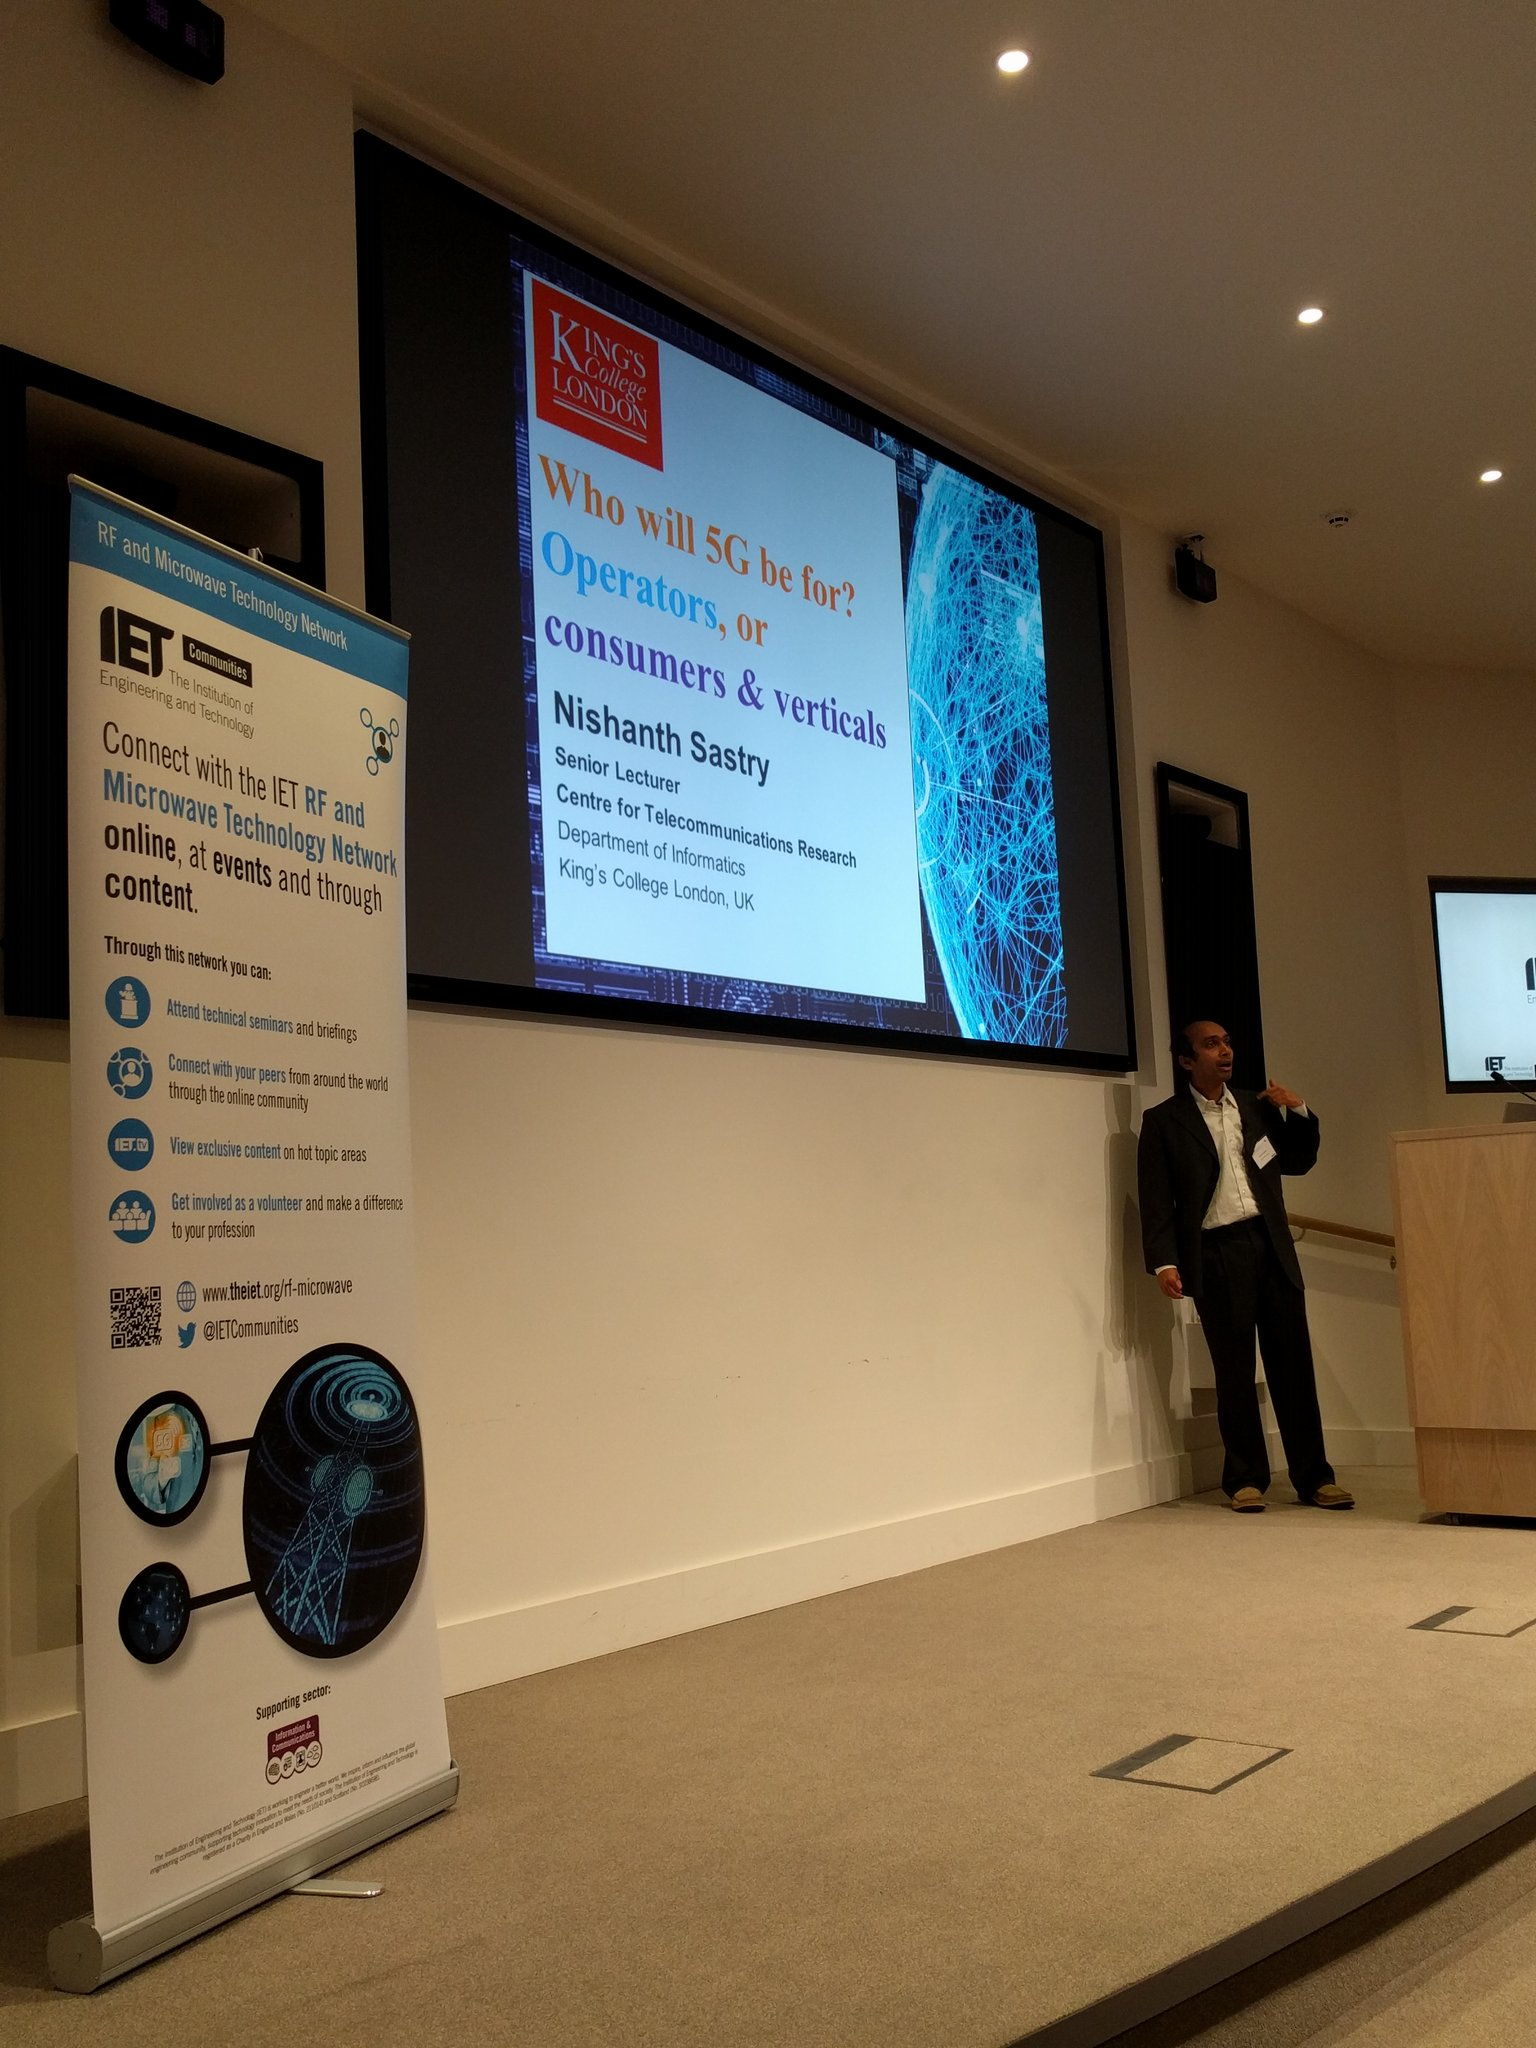 Now up is @nishanthsastry #towards5g @IETCommunities @TheIET https://t.co/SicHZdsM8S